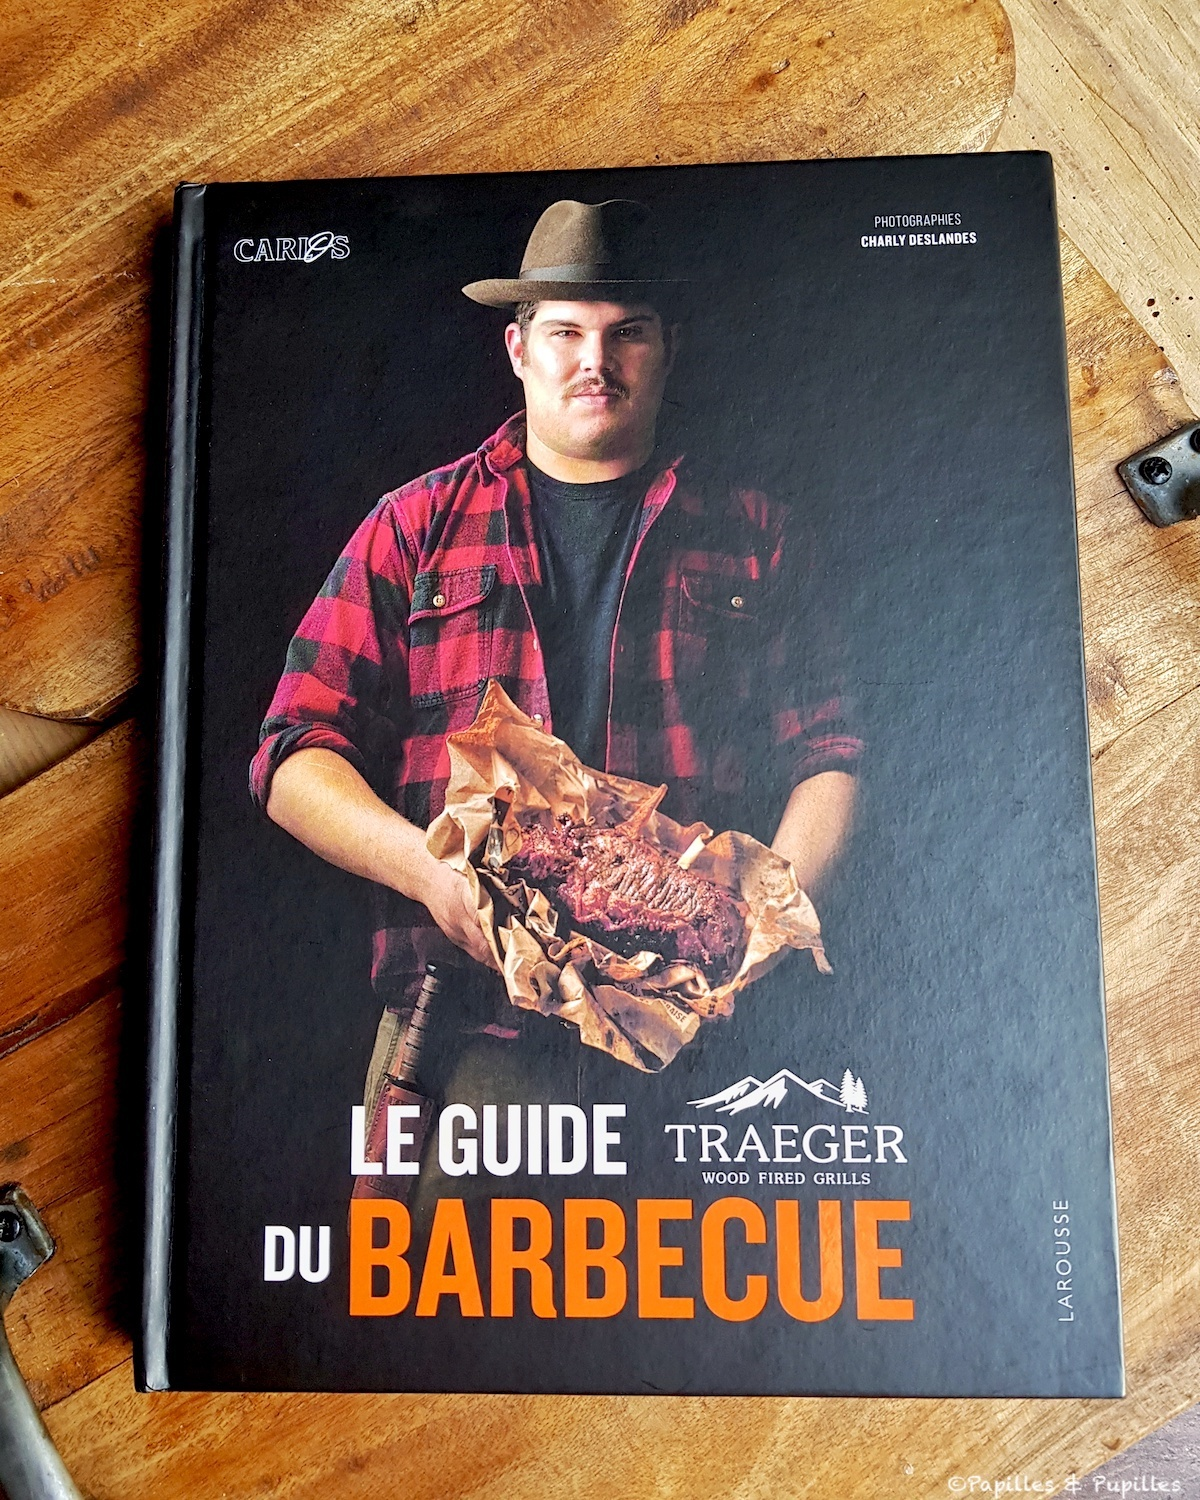 Le Guide Traegger du Barbecue